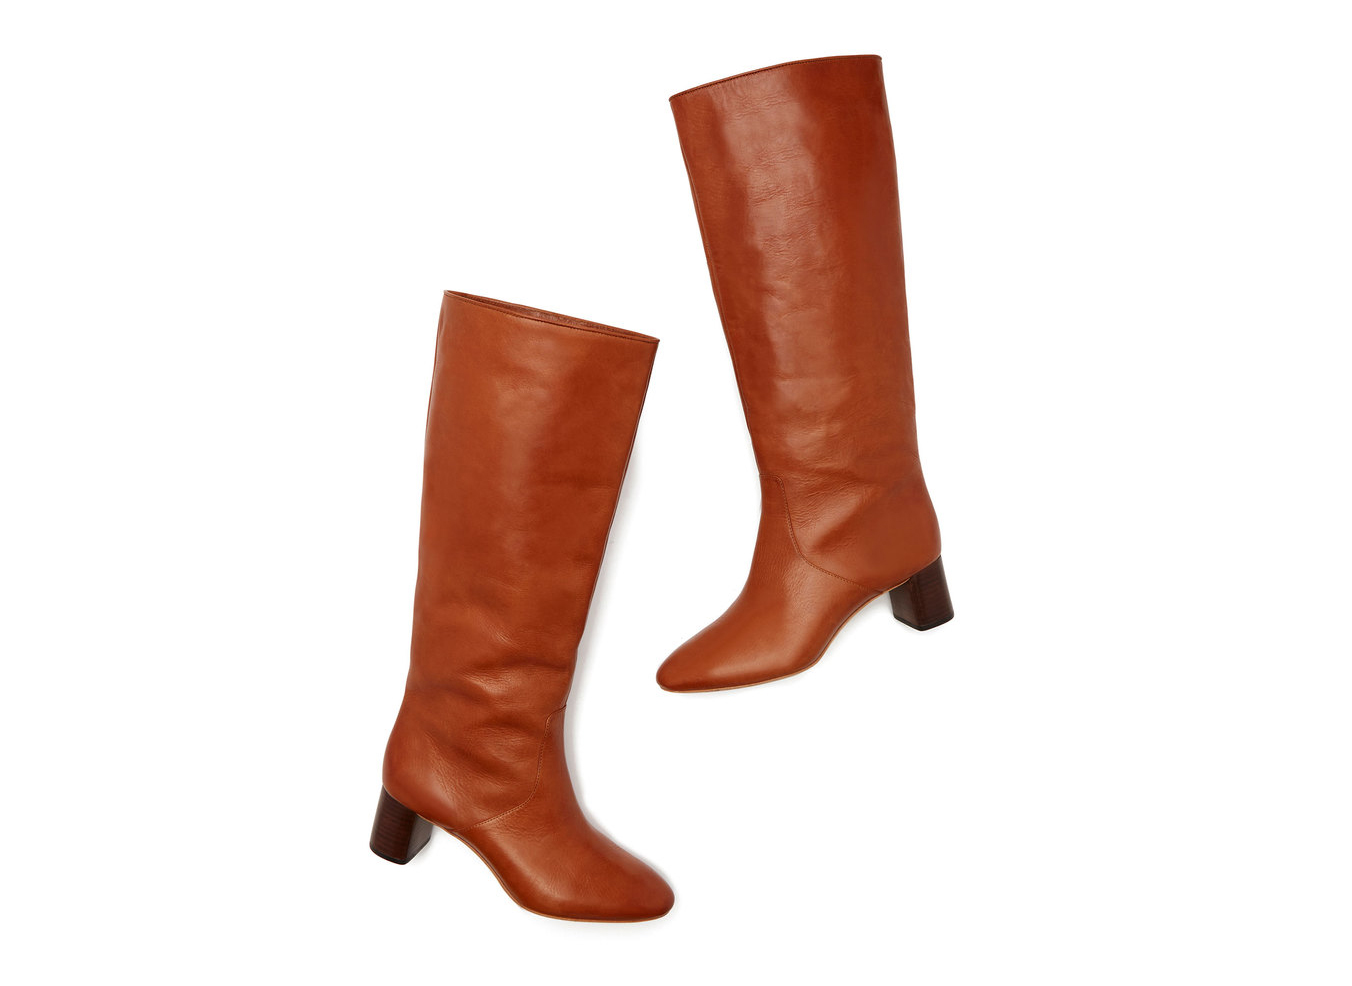 Loeffler Randall Gia Leather Boots